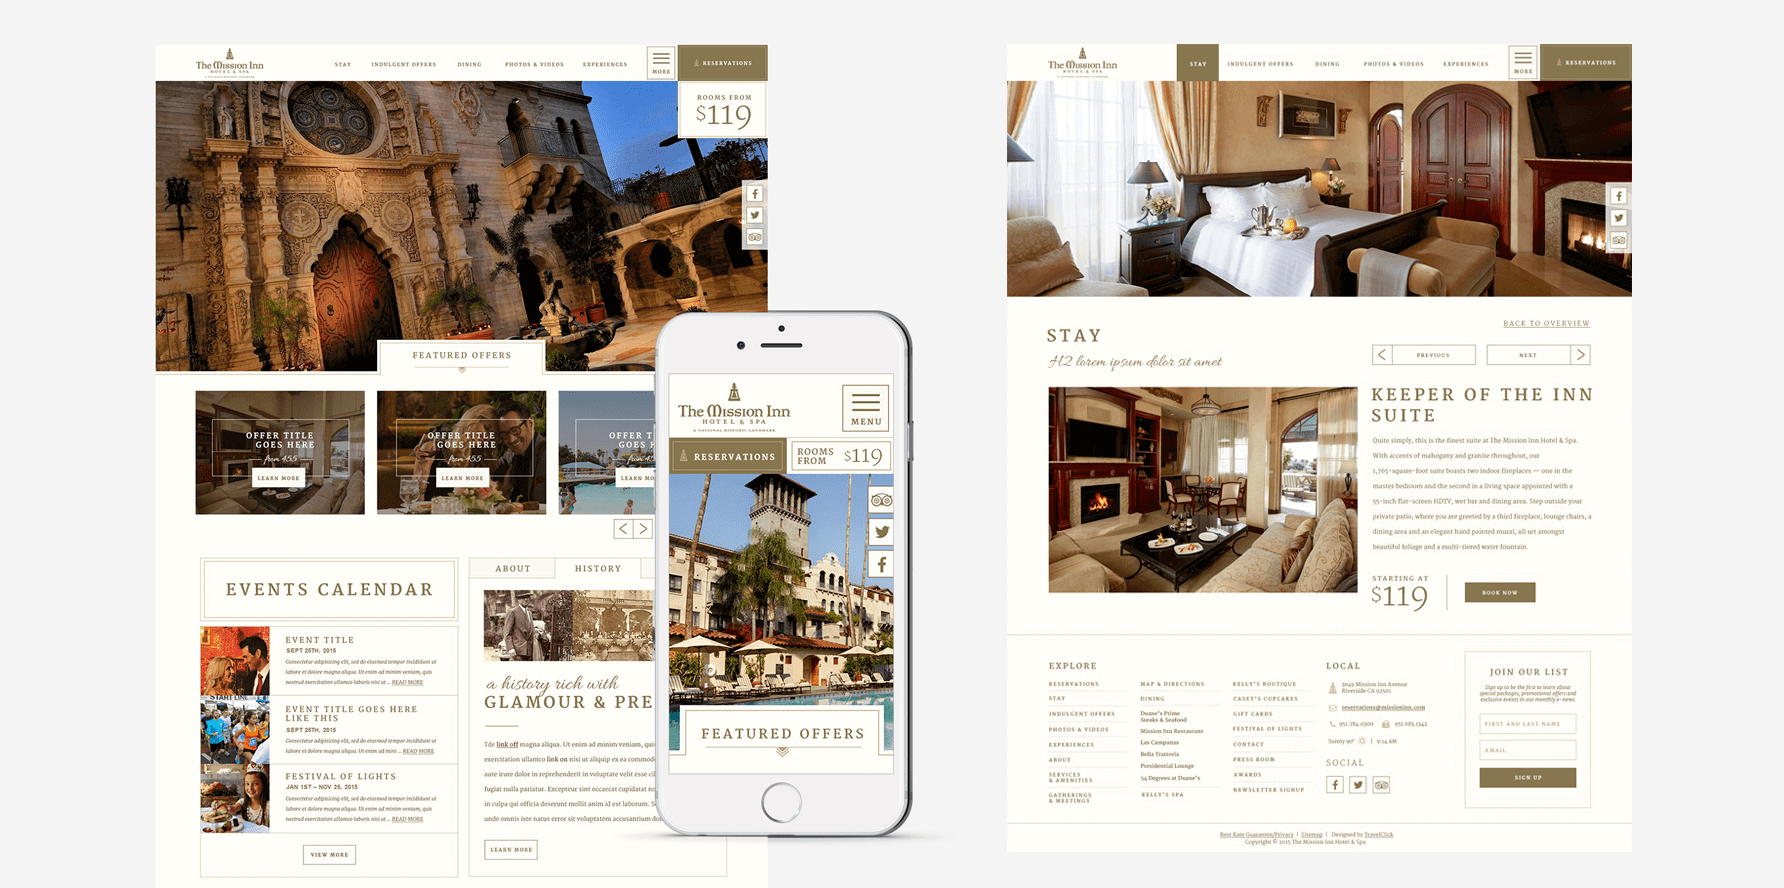 Mission Inn Website Design 1